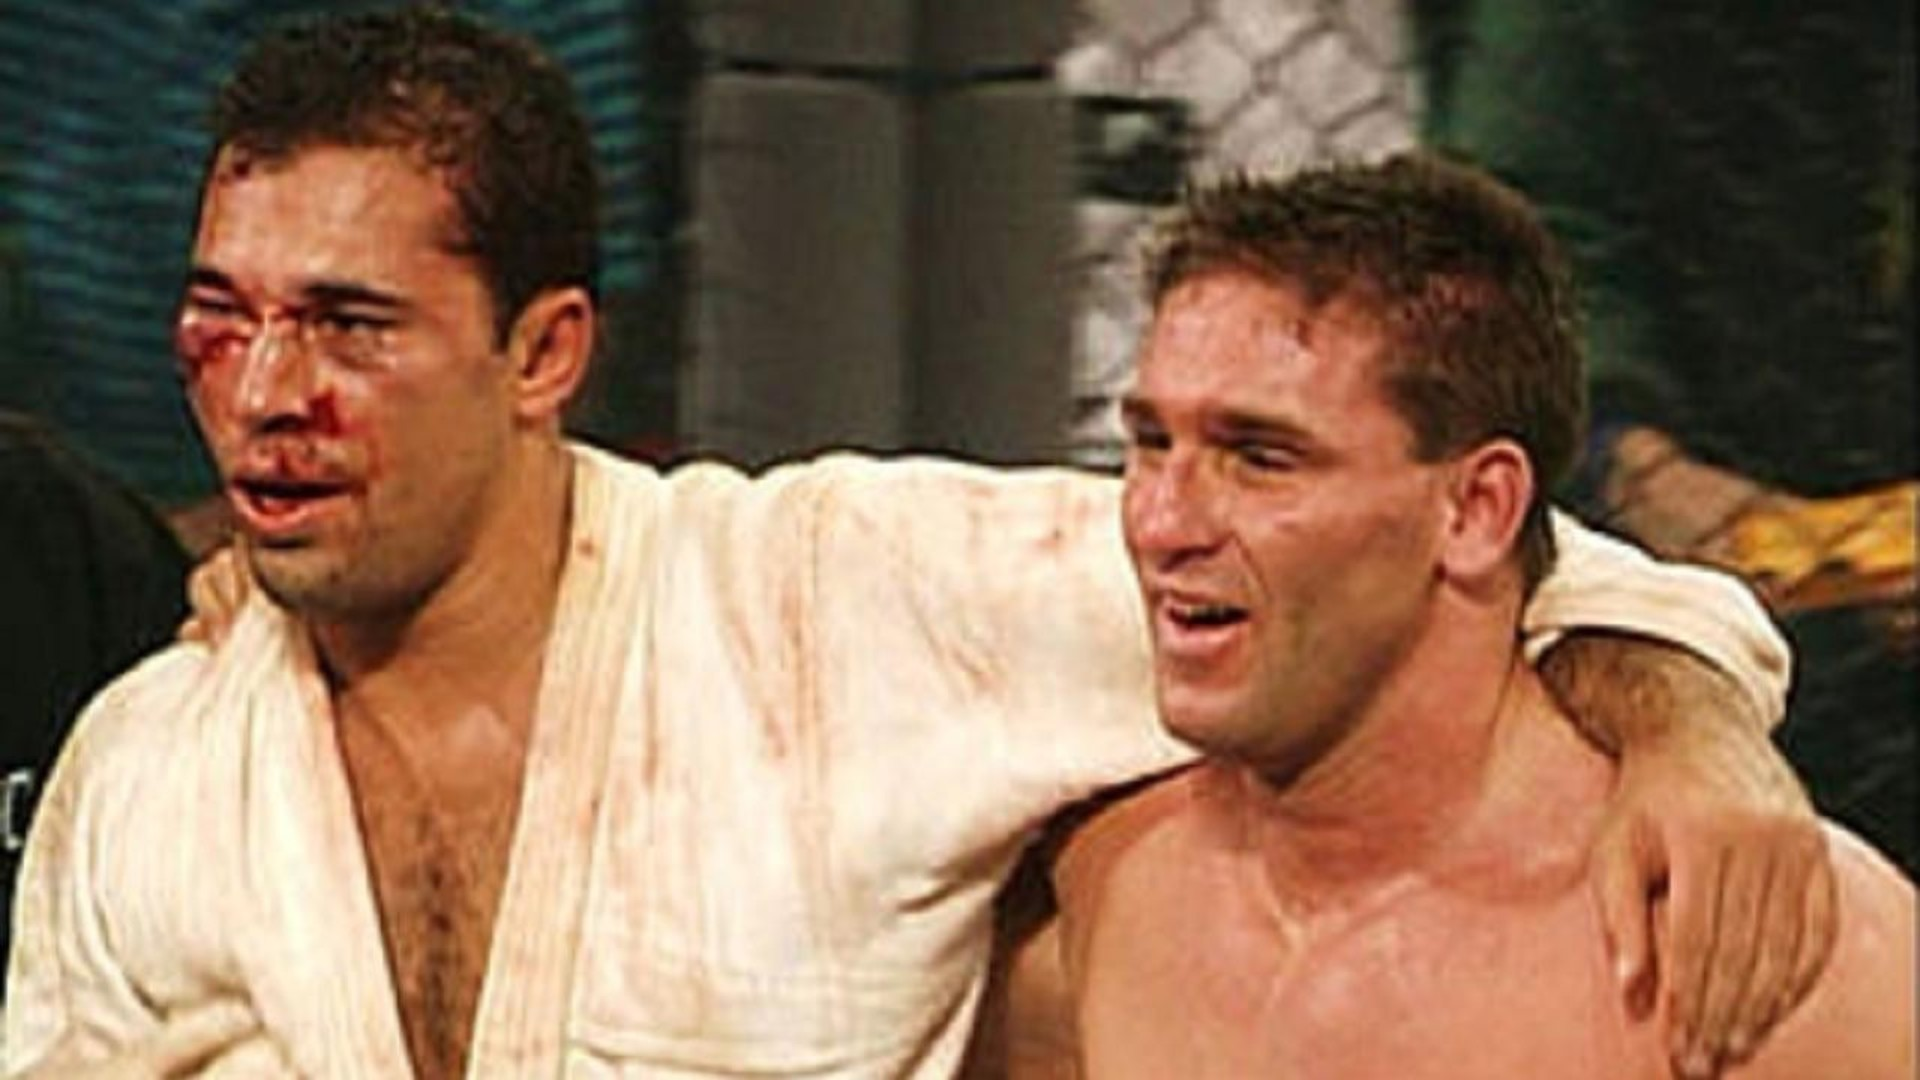 Royce Gracie vs. Ken Shamrock Bellator 149:ssä